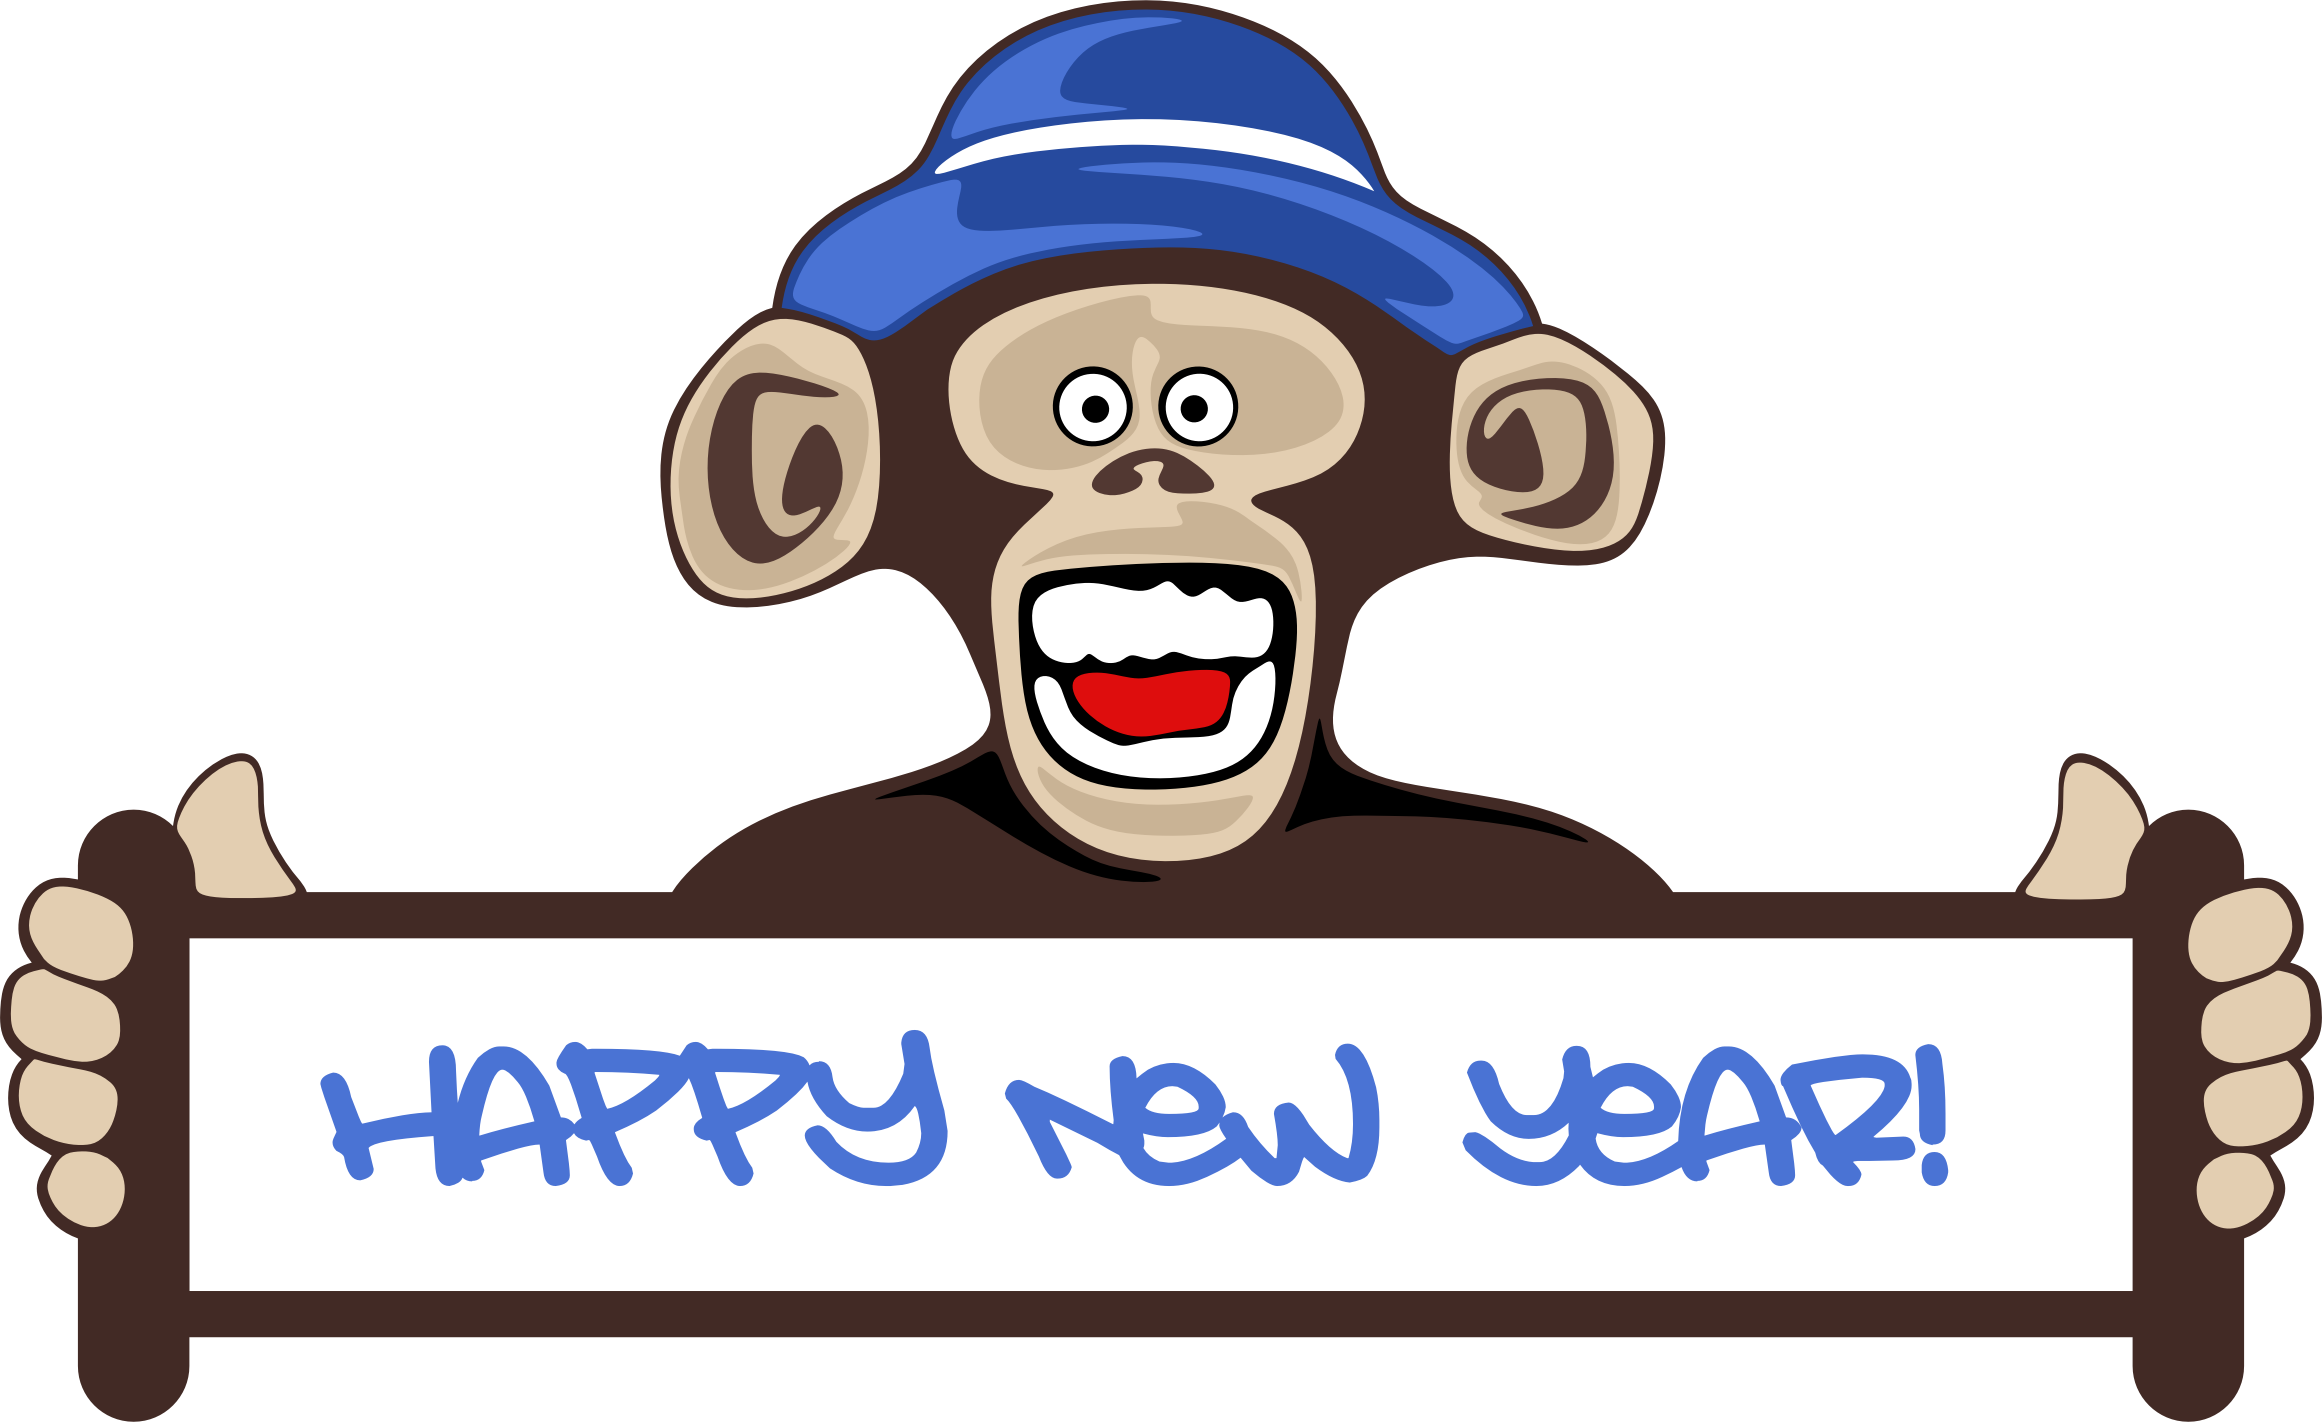 Essay clipart animated. Happy new year monkey